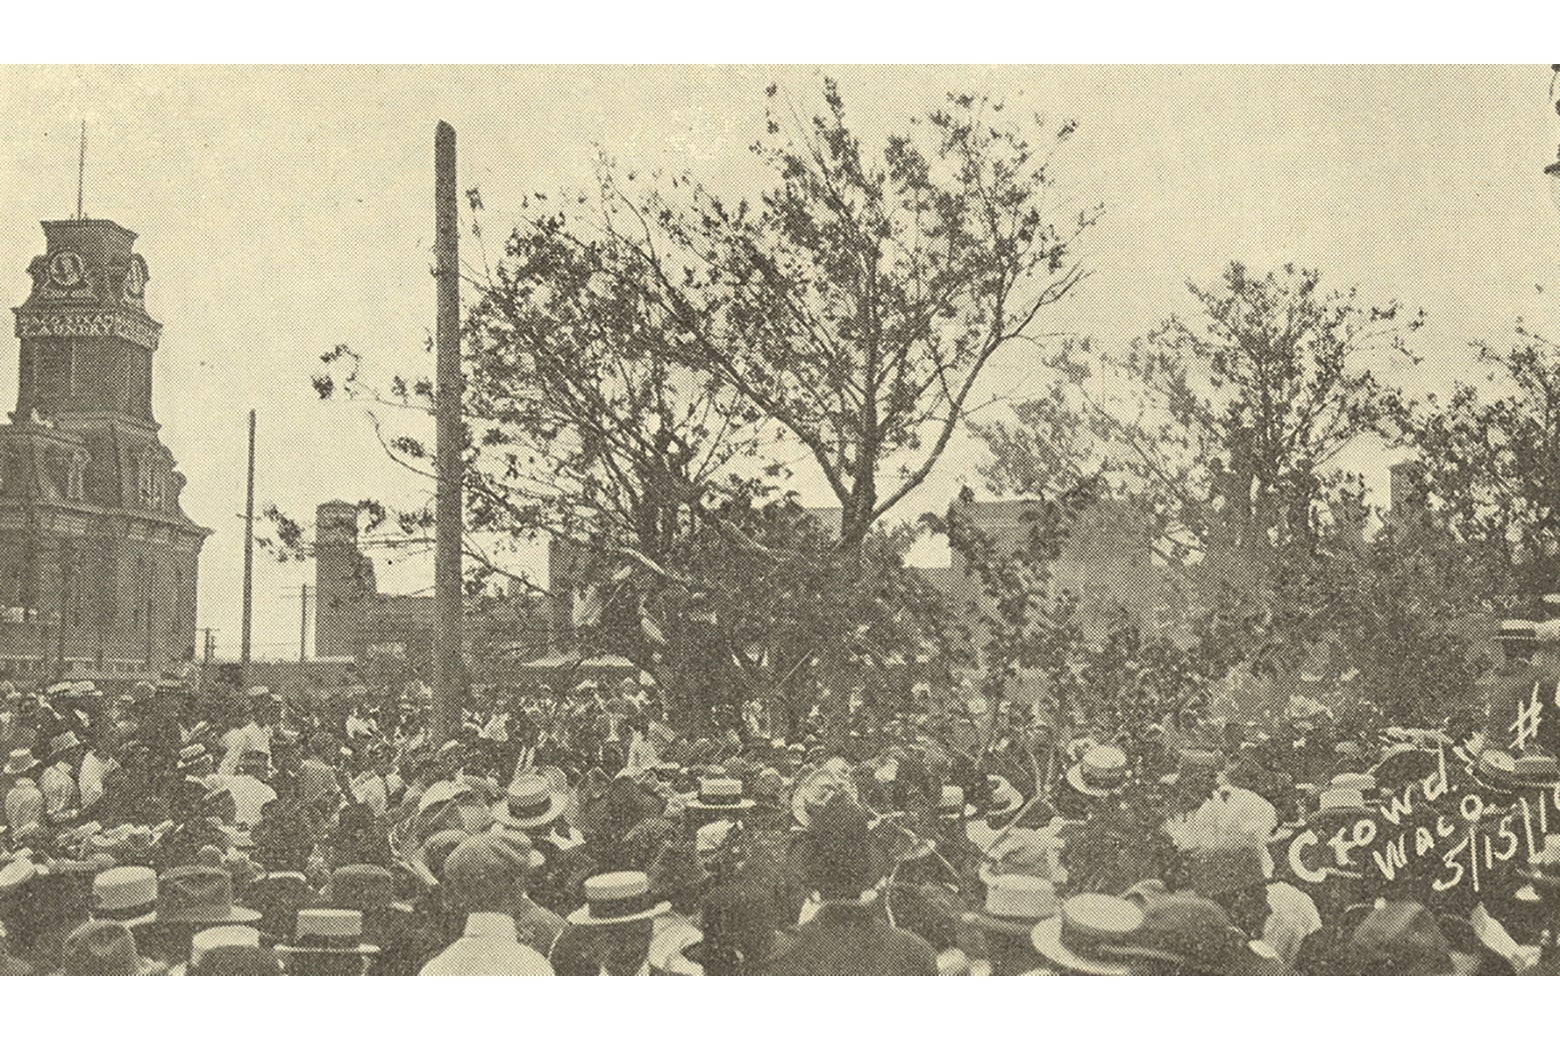 A crowd behind Waco's city hall.